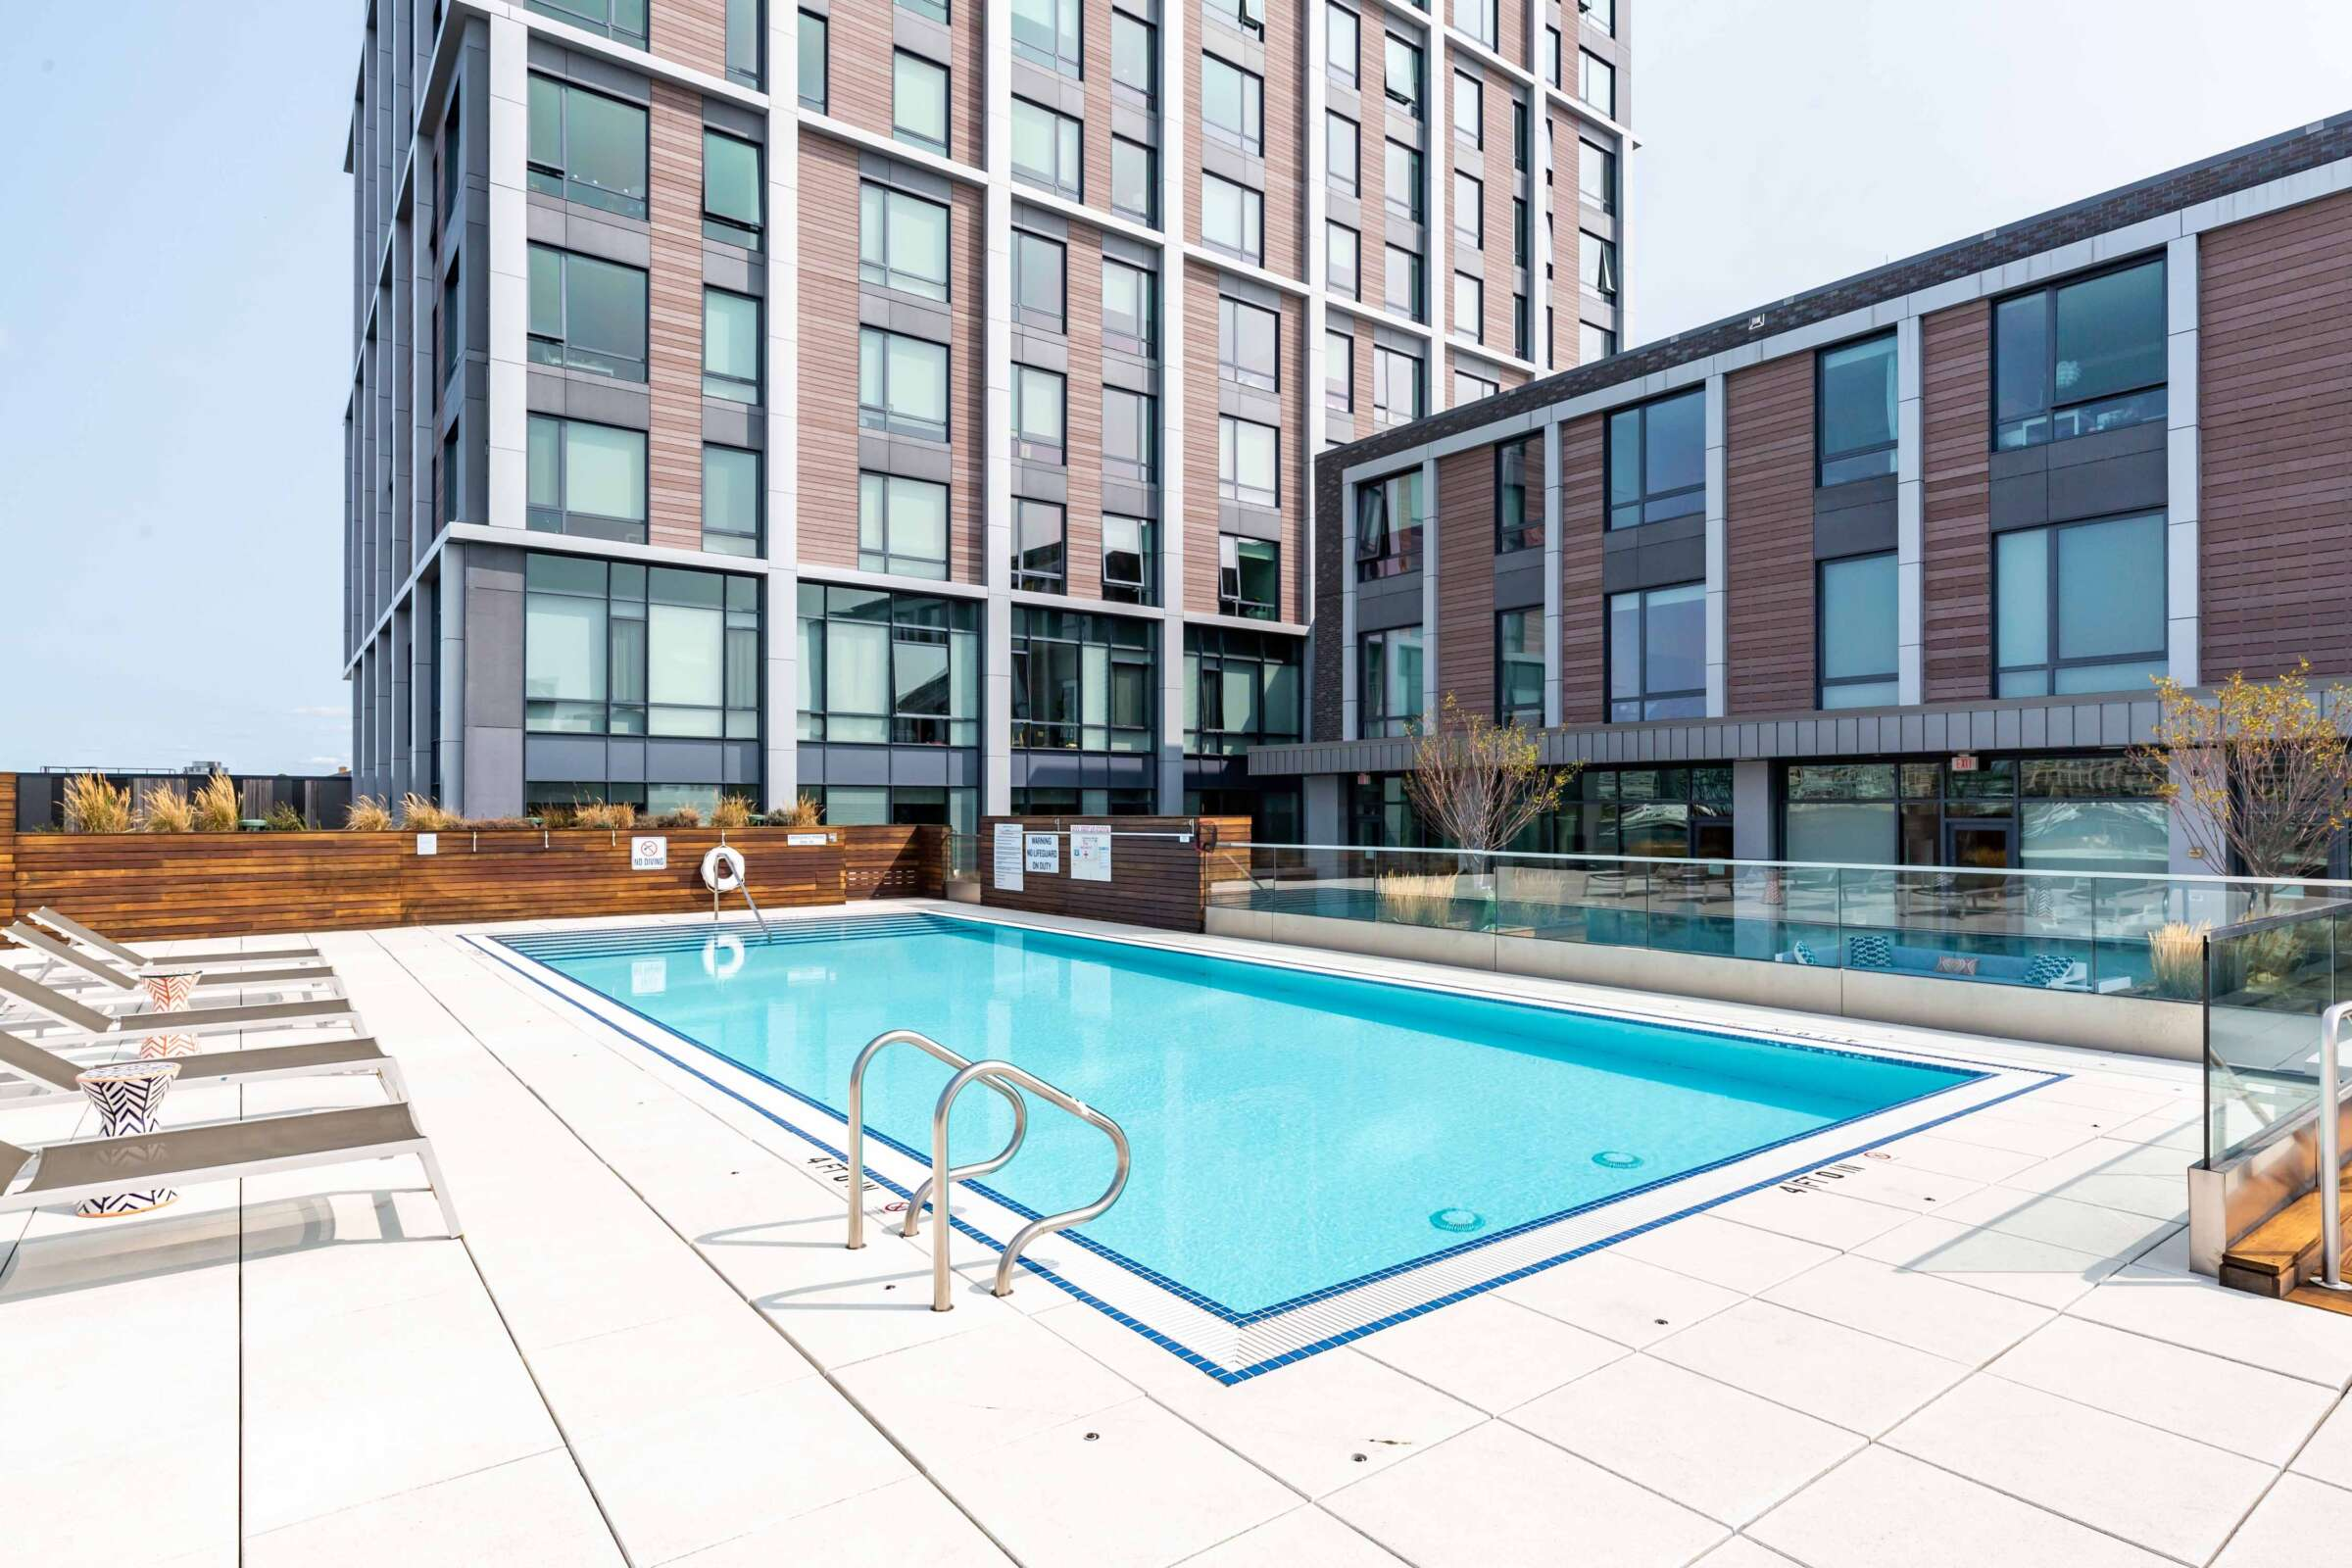 The Eddy East Boston Apartments Amenities 14 pool deck